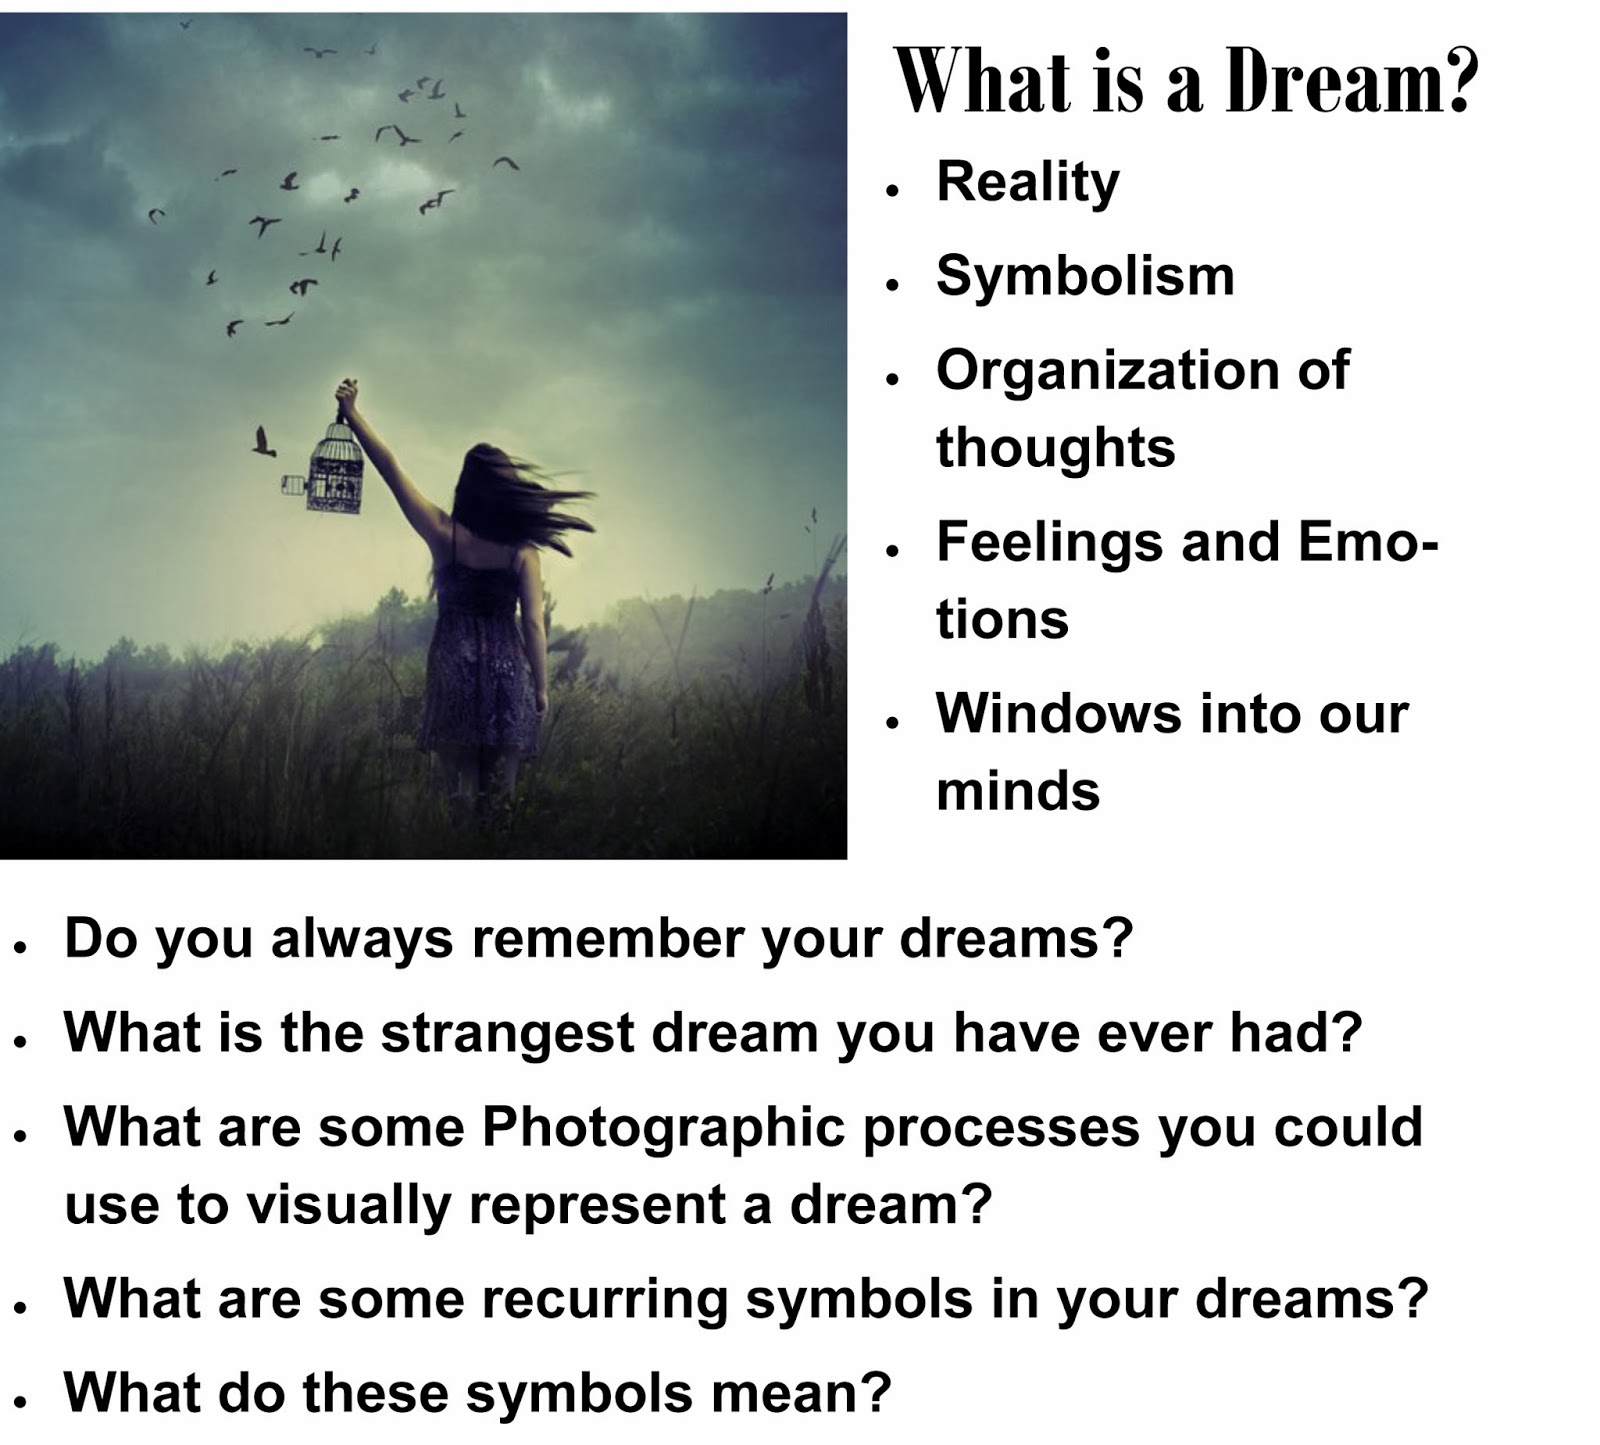 Dreamtography advanced photography sketchbook assignments dreams are symbols biocorpaavc Choice Image